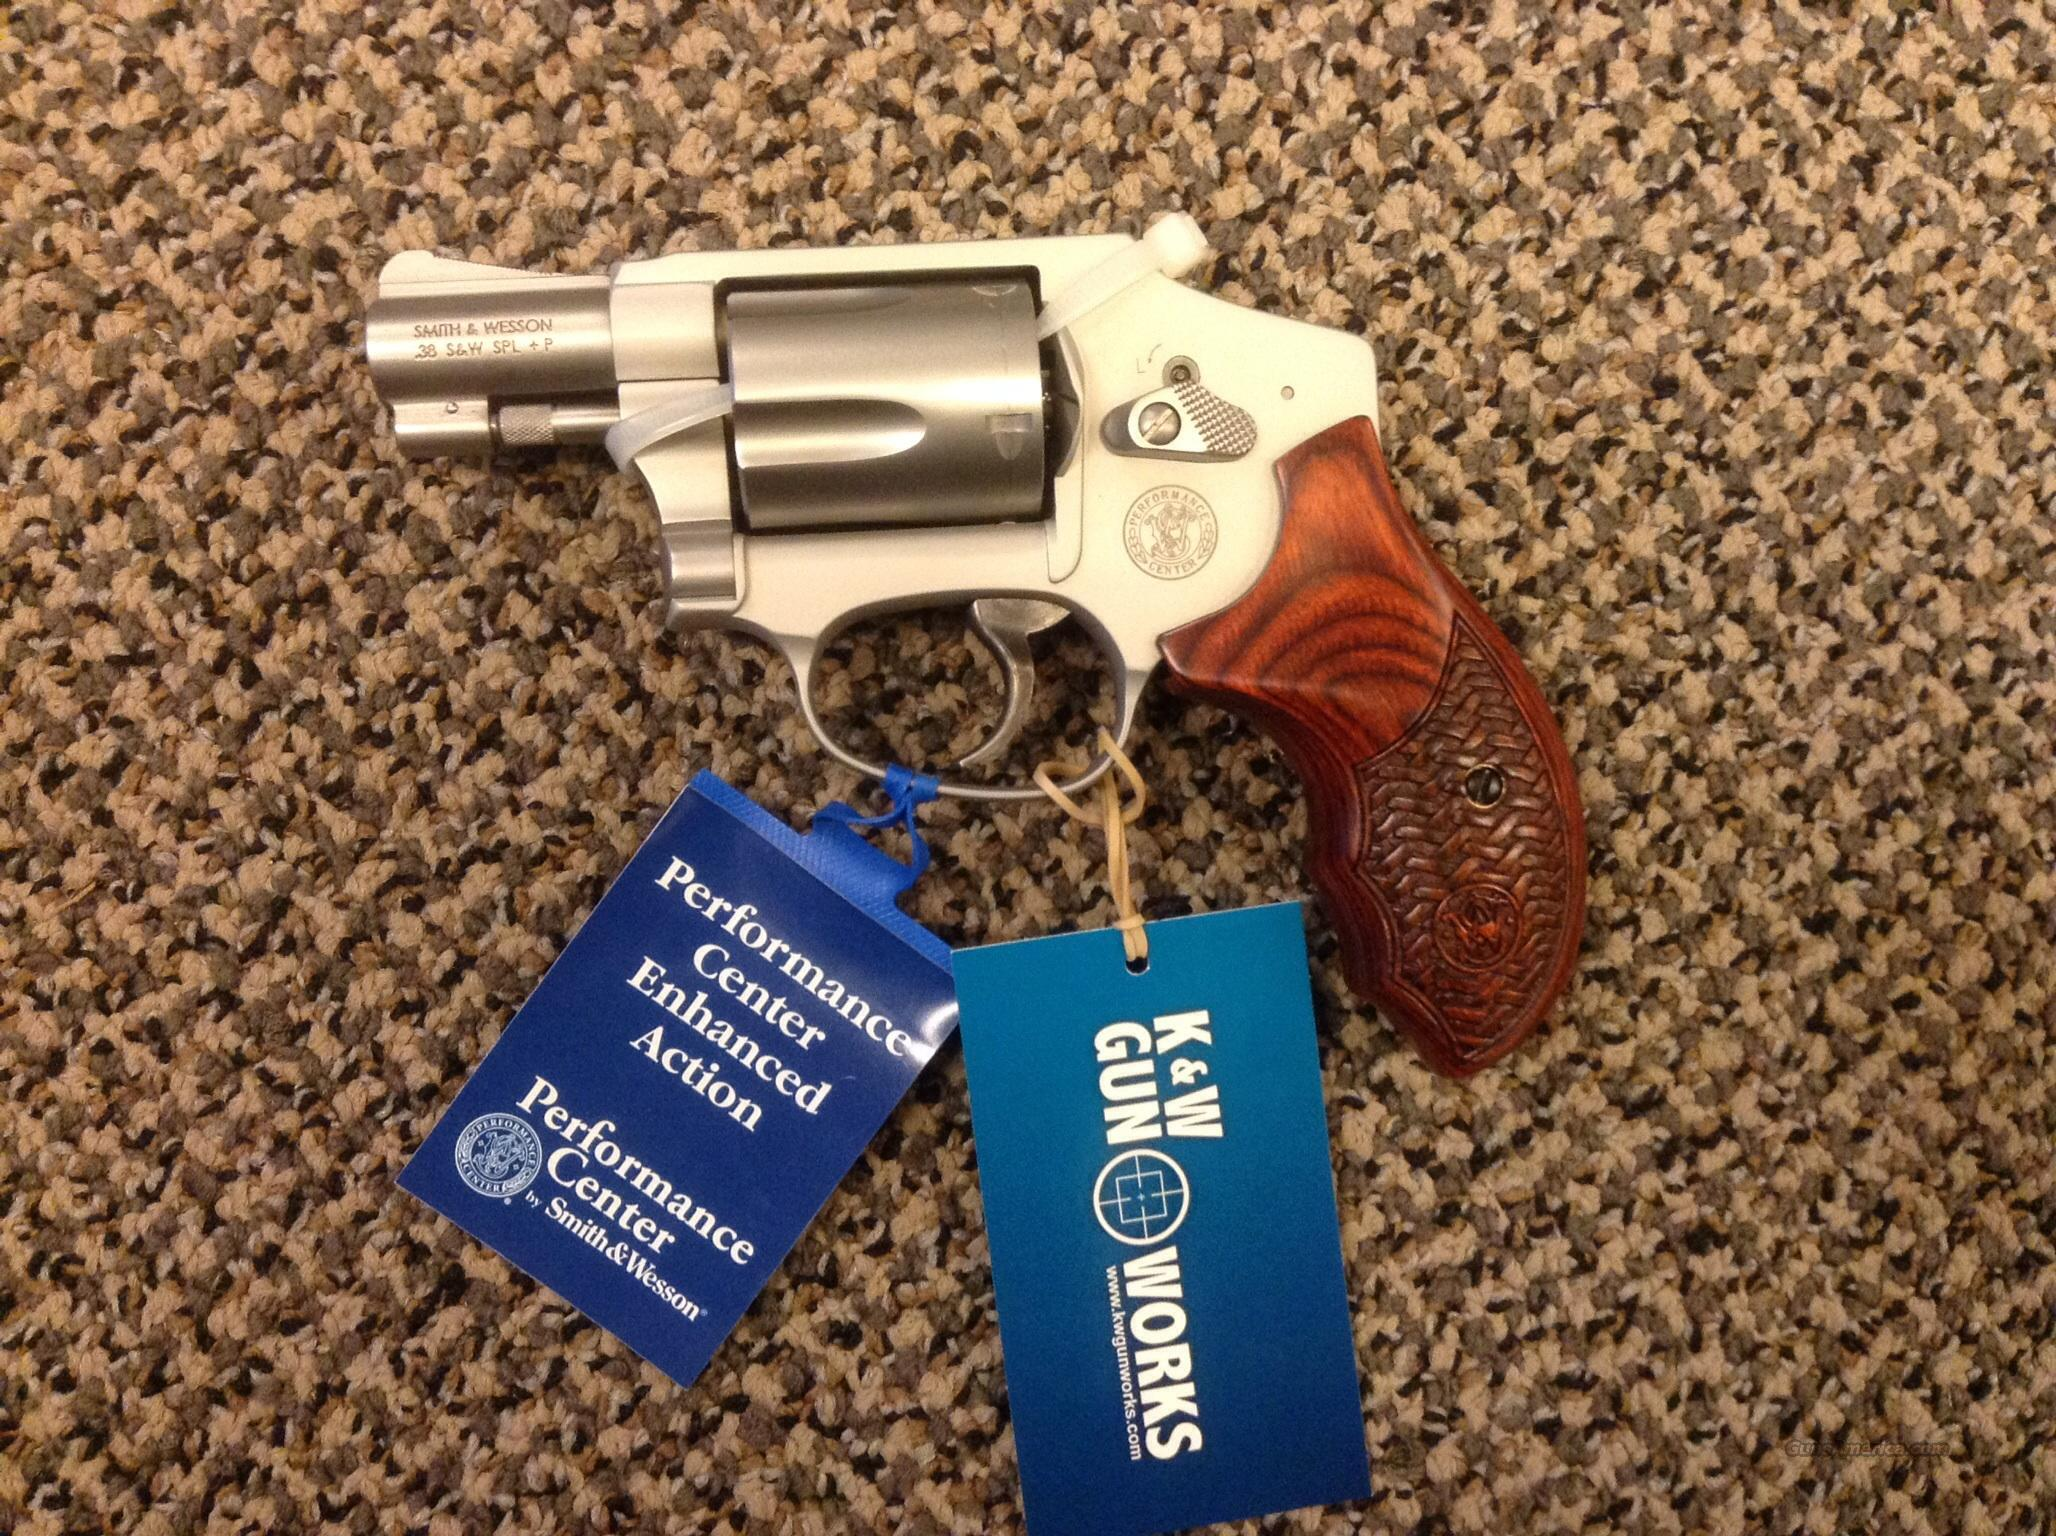 S&W MODEL 642 PERFORMANCE CENTER .38 SPECIAL + P  Guns > Pistols > Smith & Wesson Revolvers > Performance Center